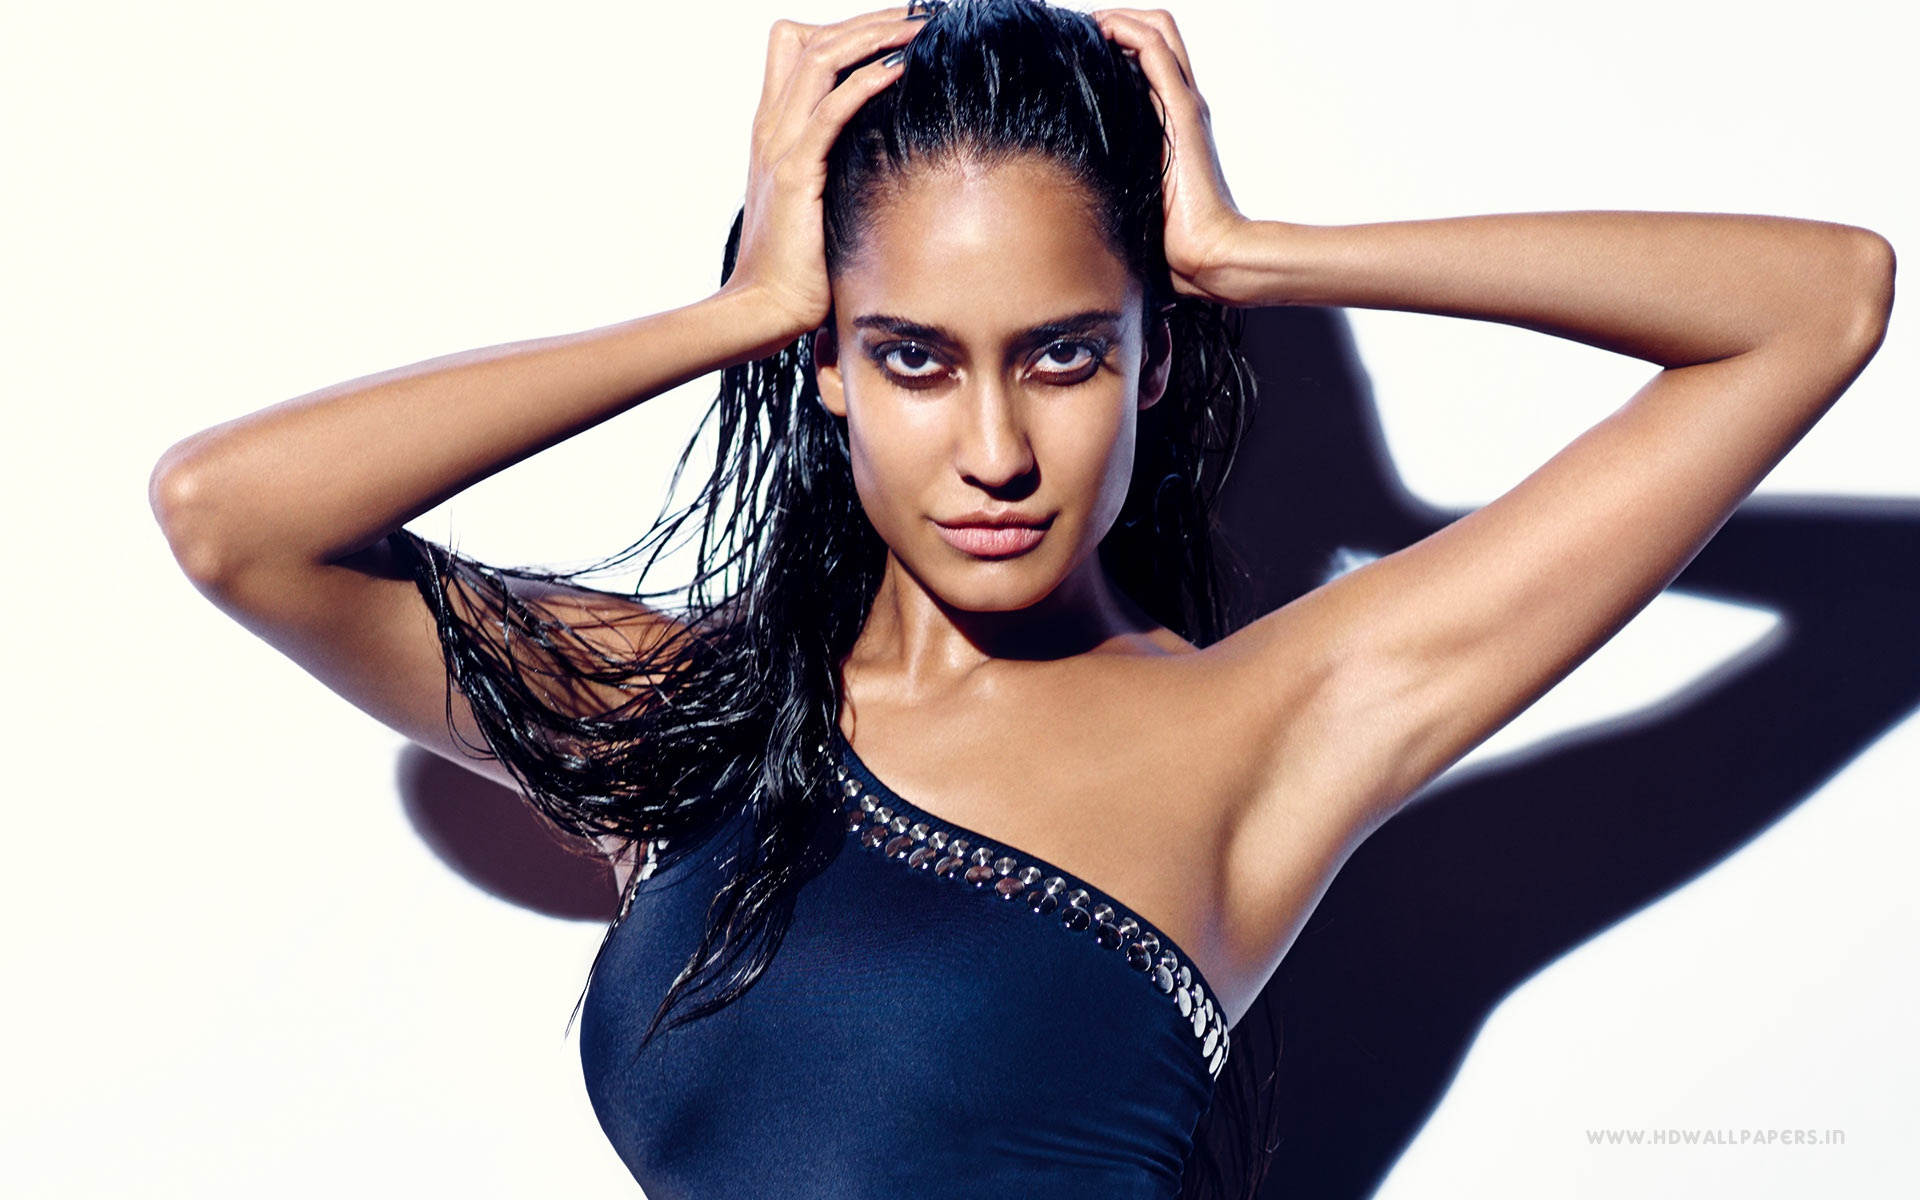 indian model lisa haydon wallpapers in jpg format for free download all free download com